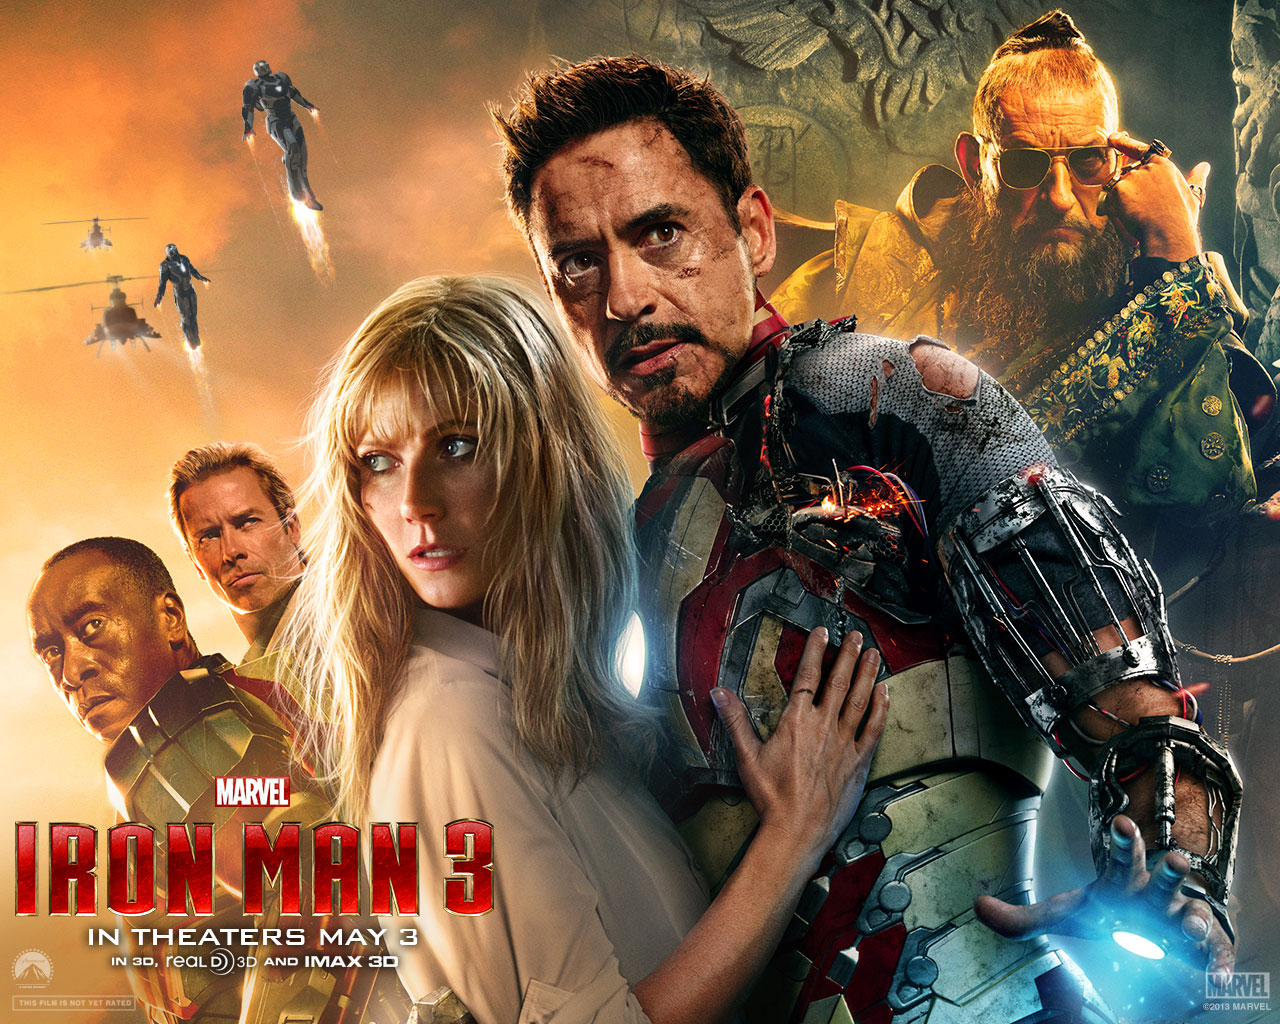 Iron Man 3 wallpaper 1280x1024 012